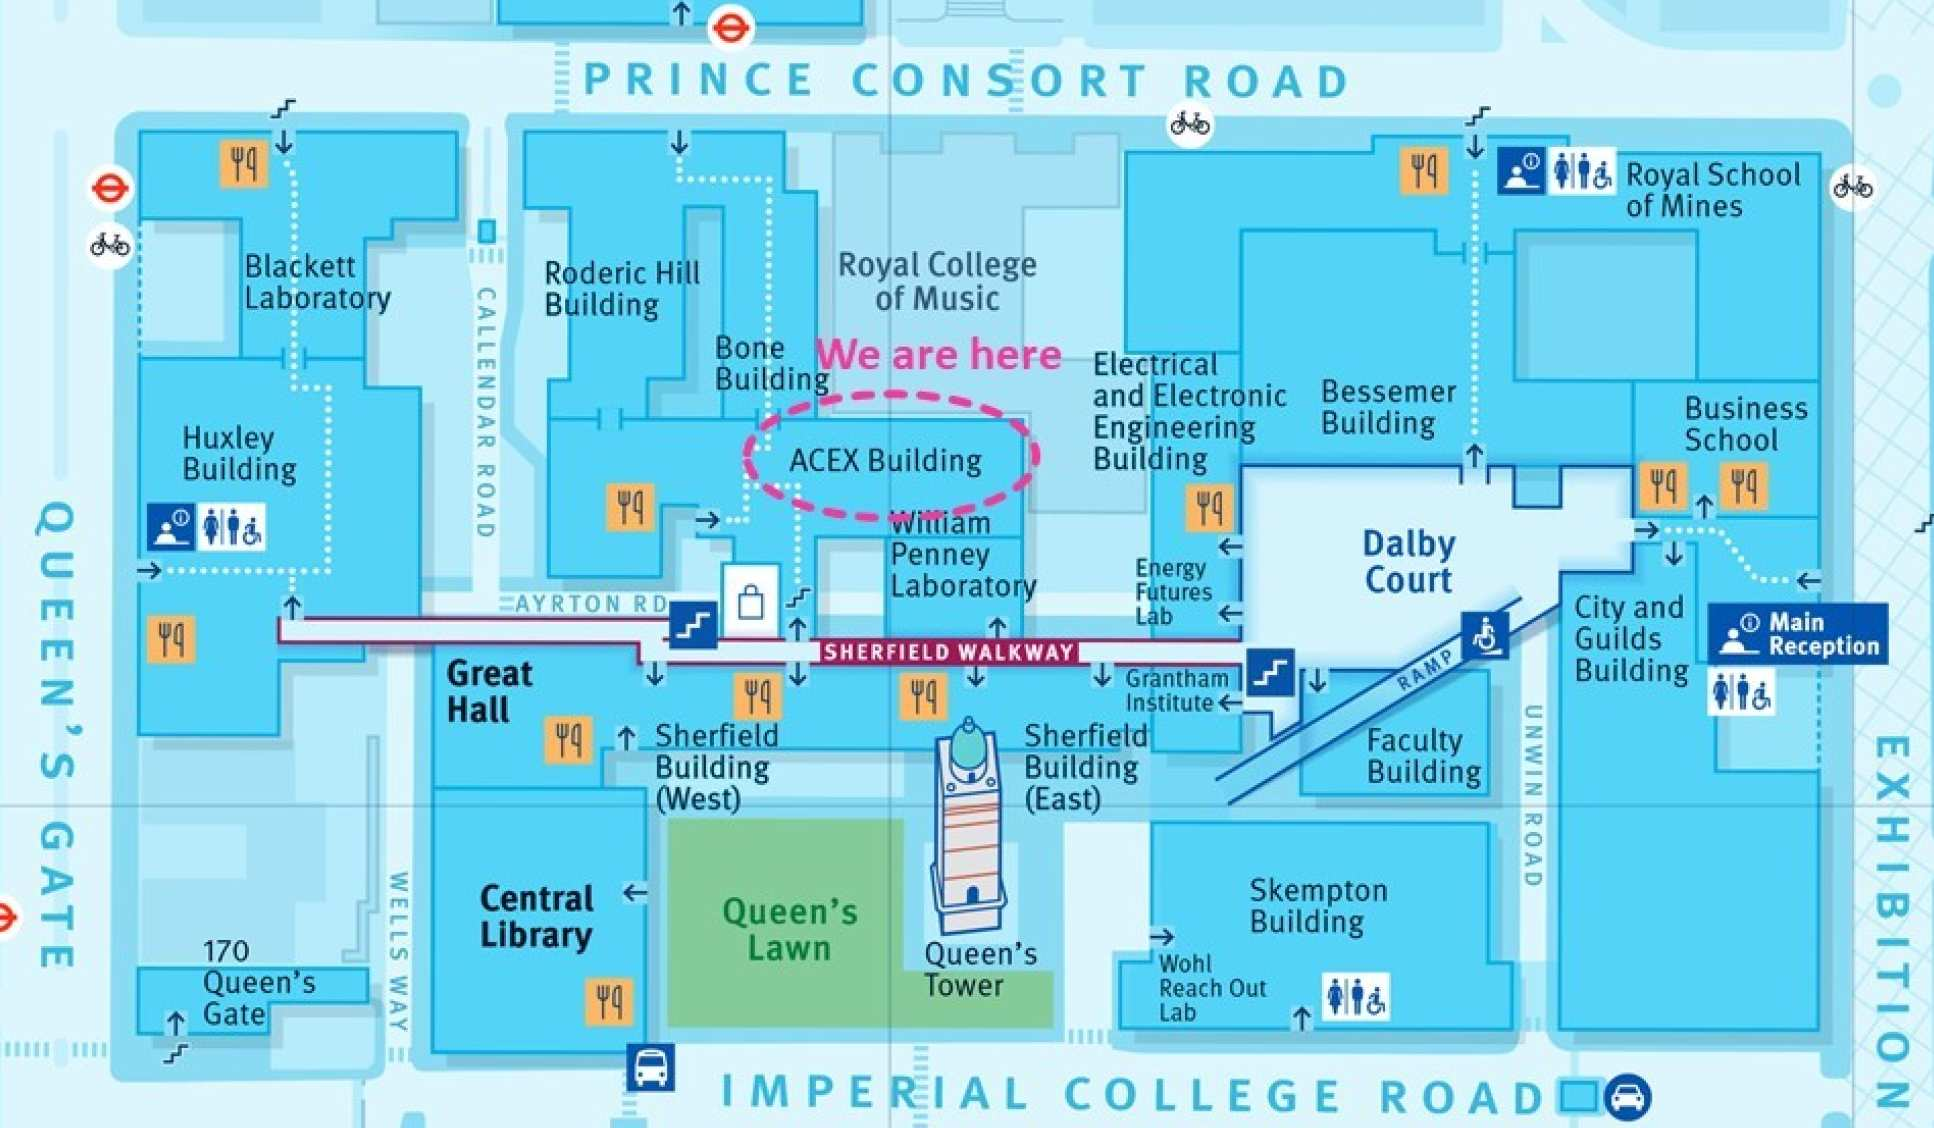 We are located in the ACEX building at the South Kensington Campus